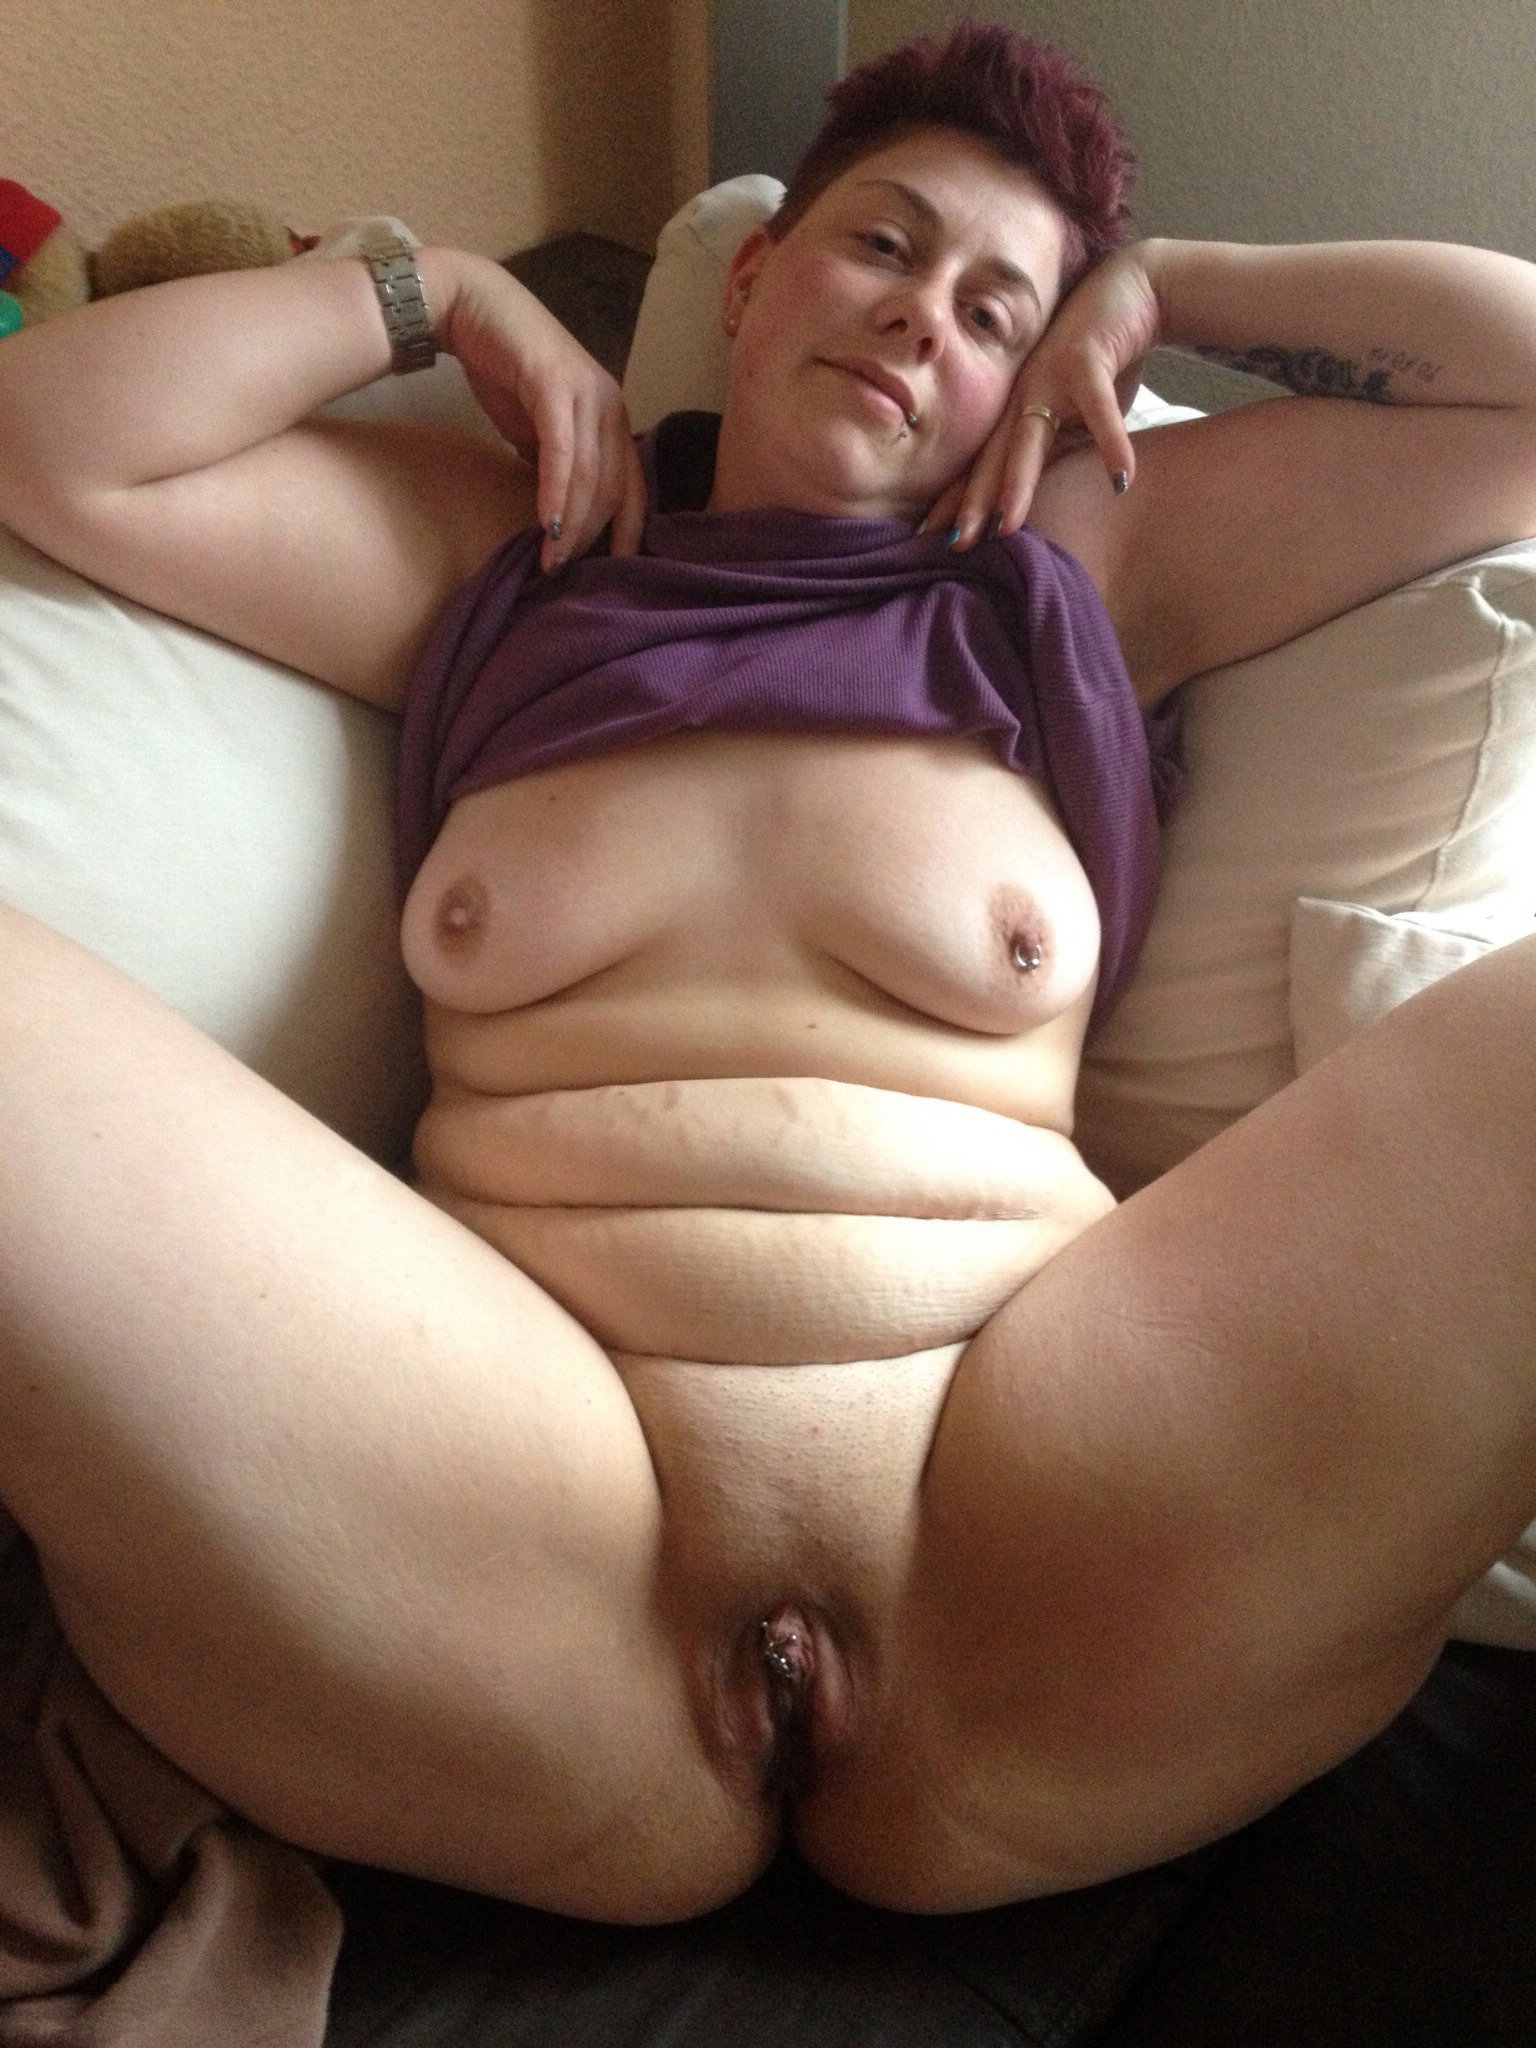 Granny playing with pussy